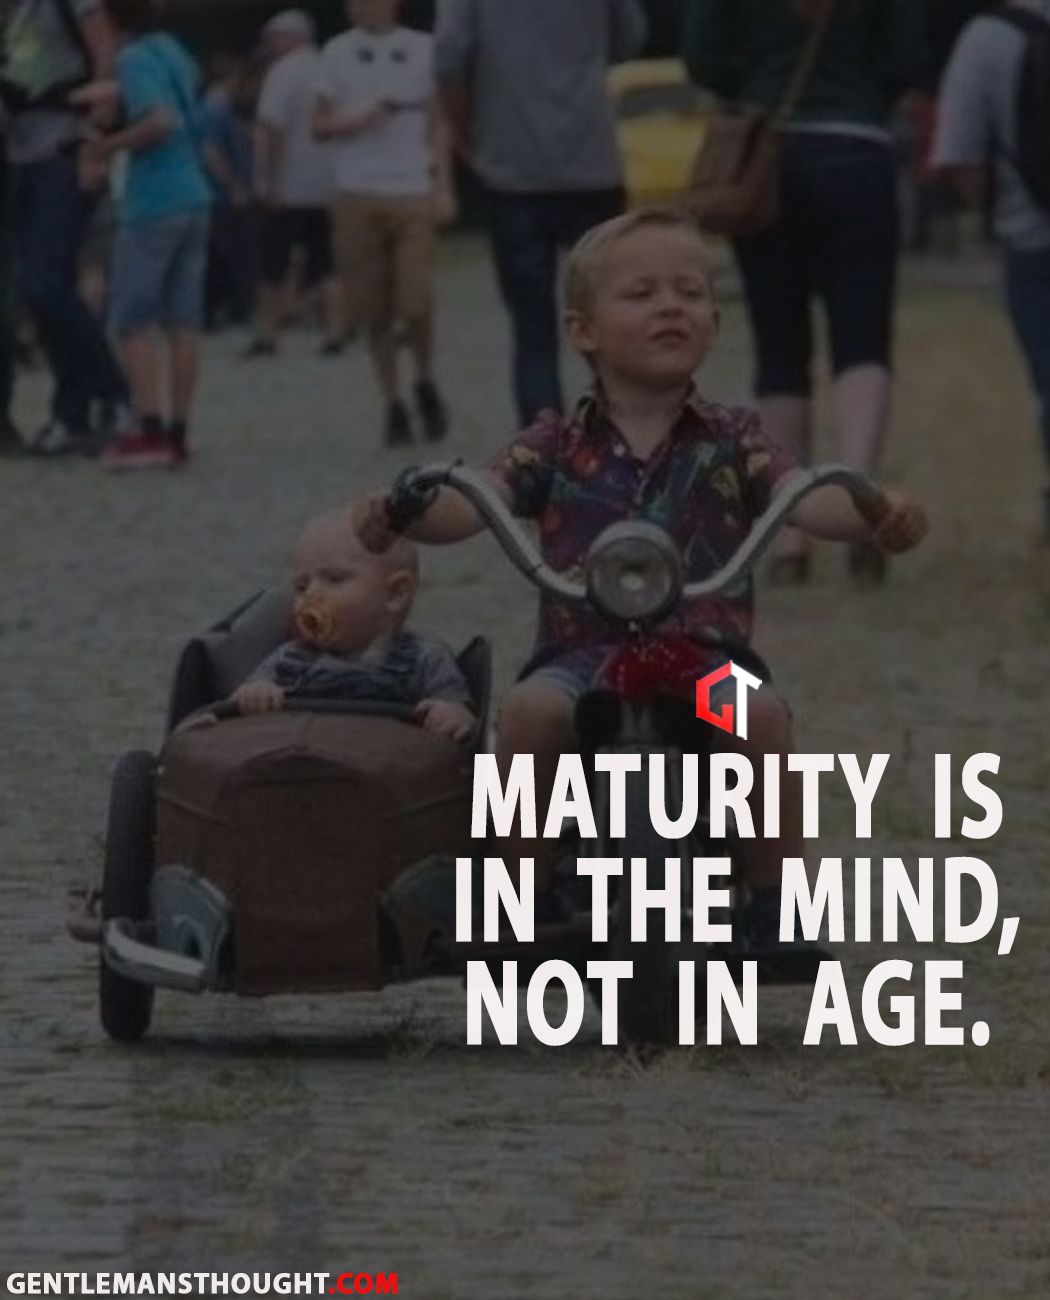 Maturity Is In The Mind Not In Age Inspirational Quotes Motivational Photos Life